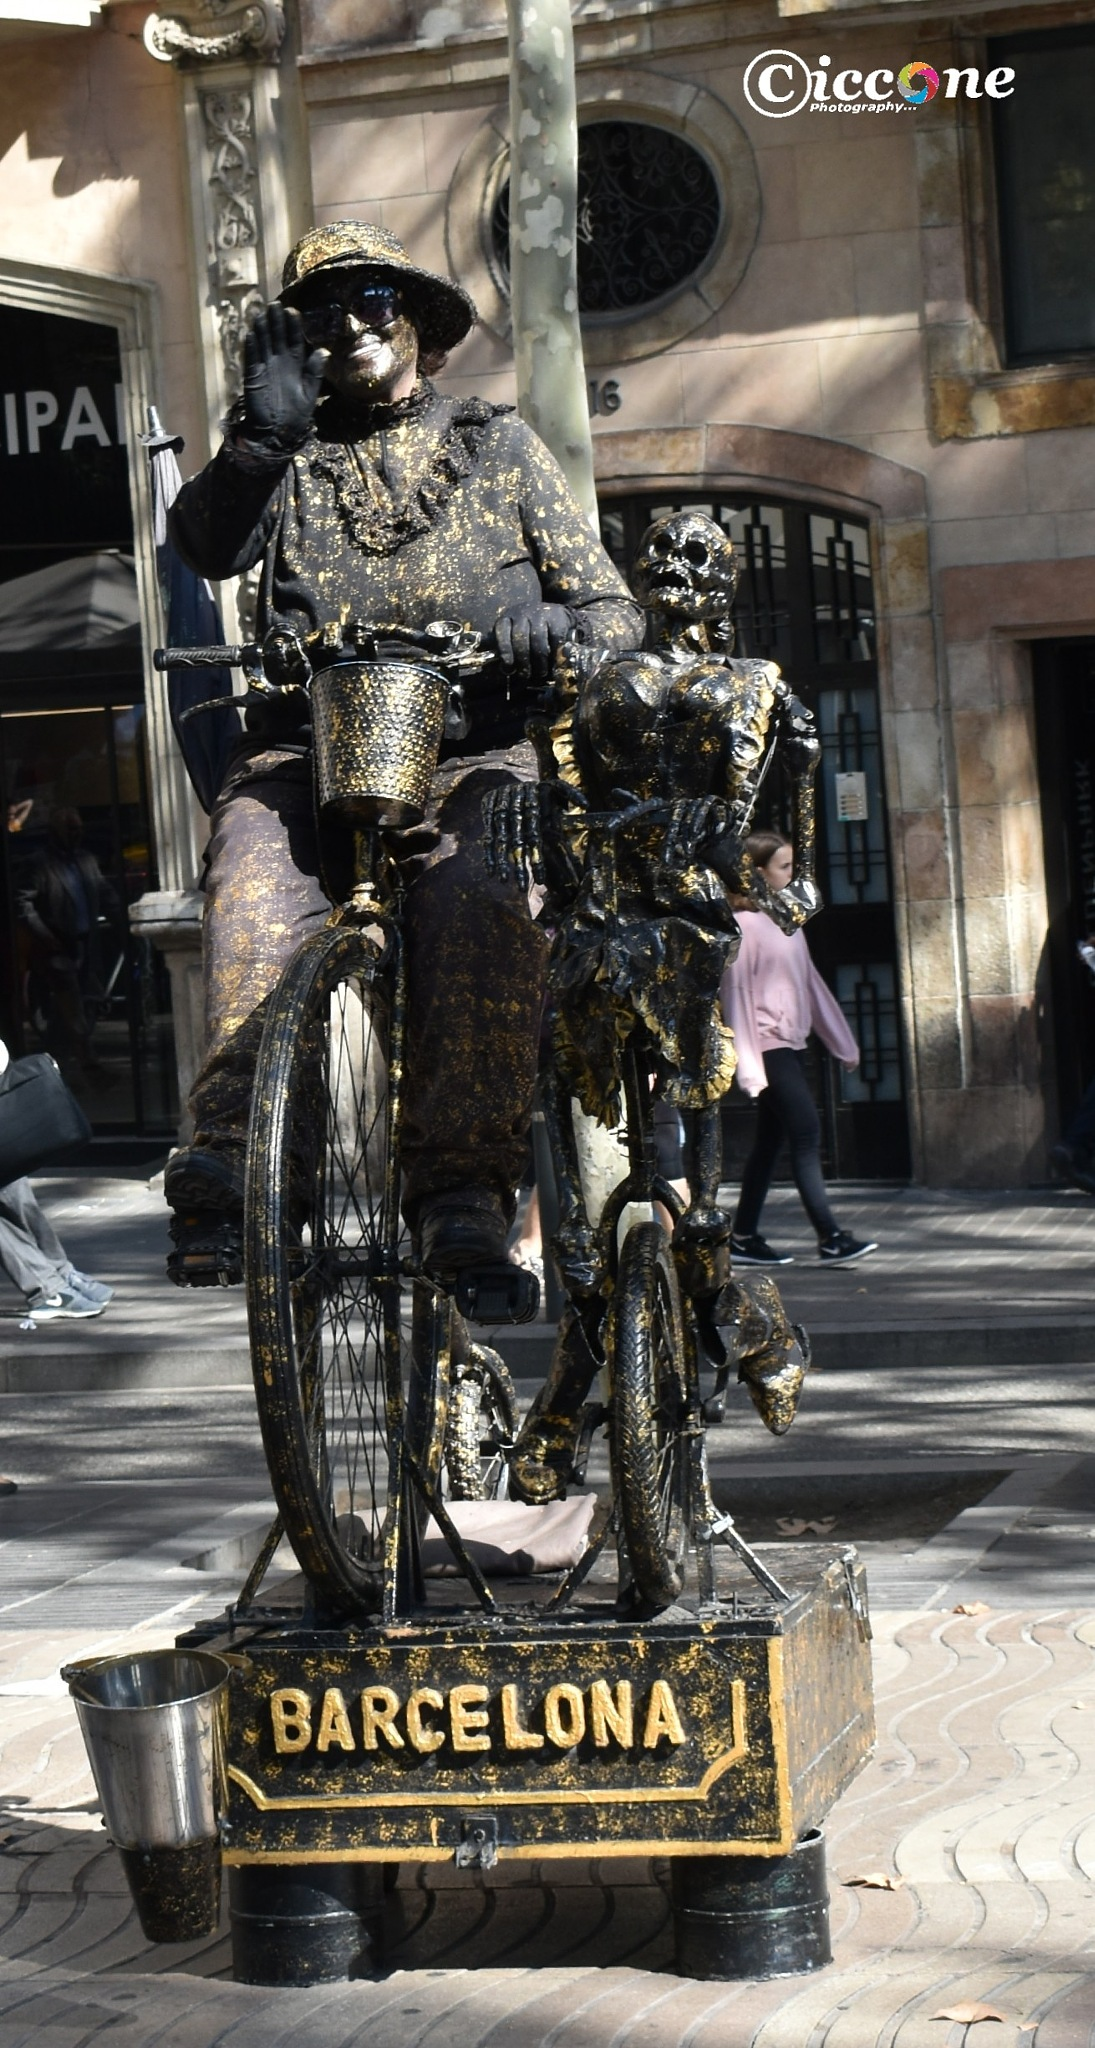 Street performer in Barcelona by Marc Ciccone